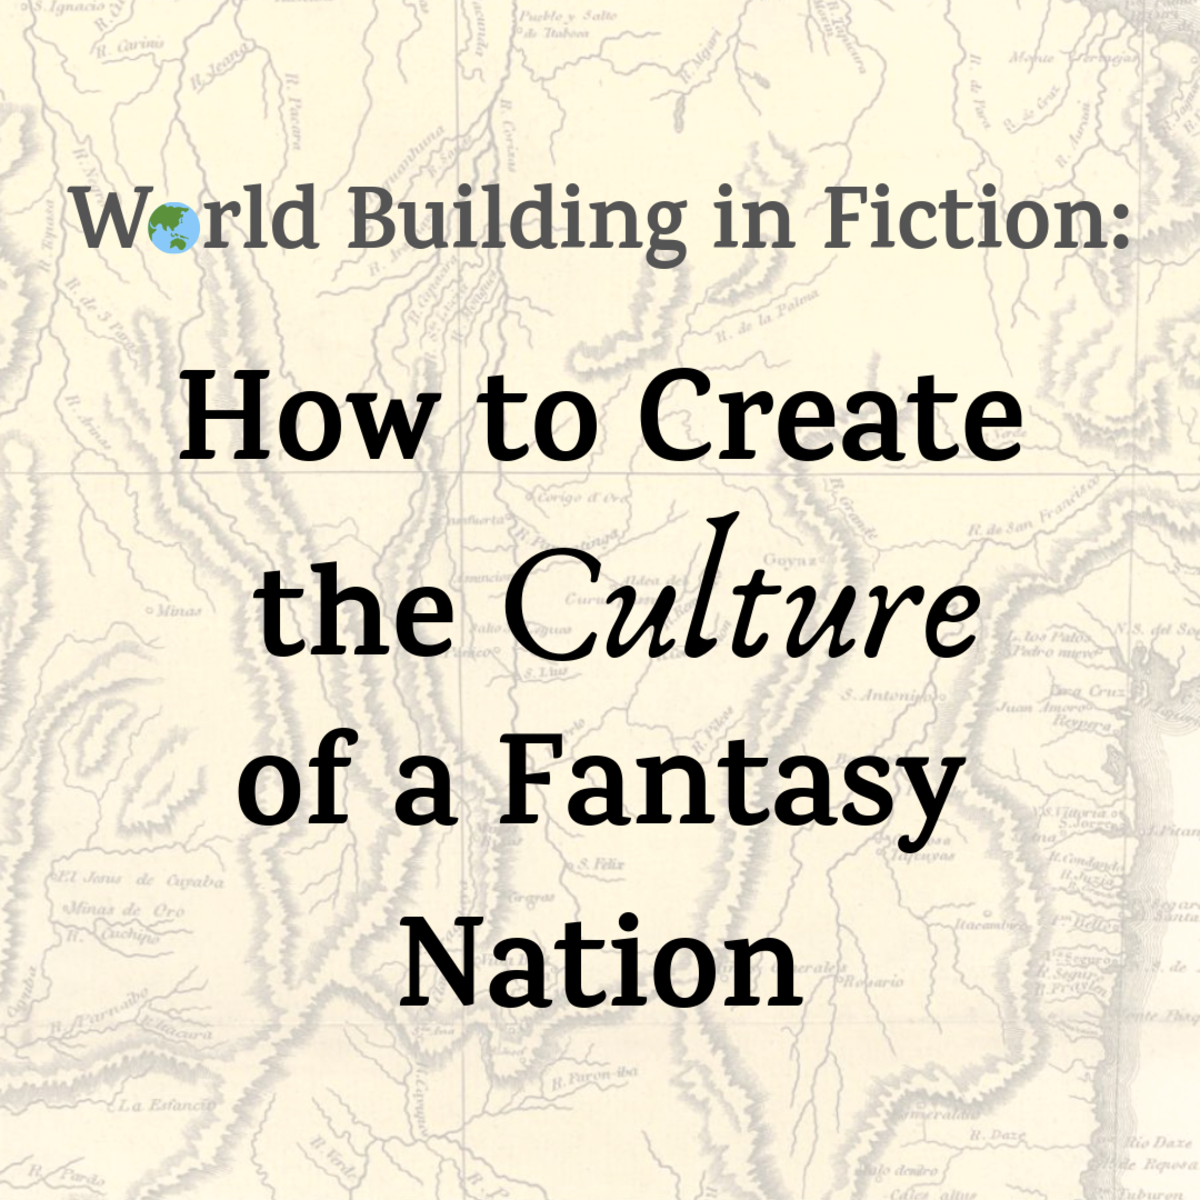 World Building in Fiction: How to Create the Culture of a Fantasy Nation